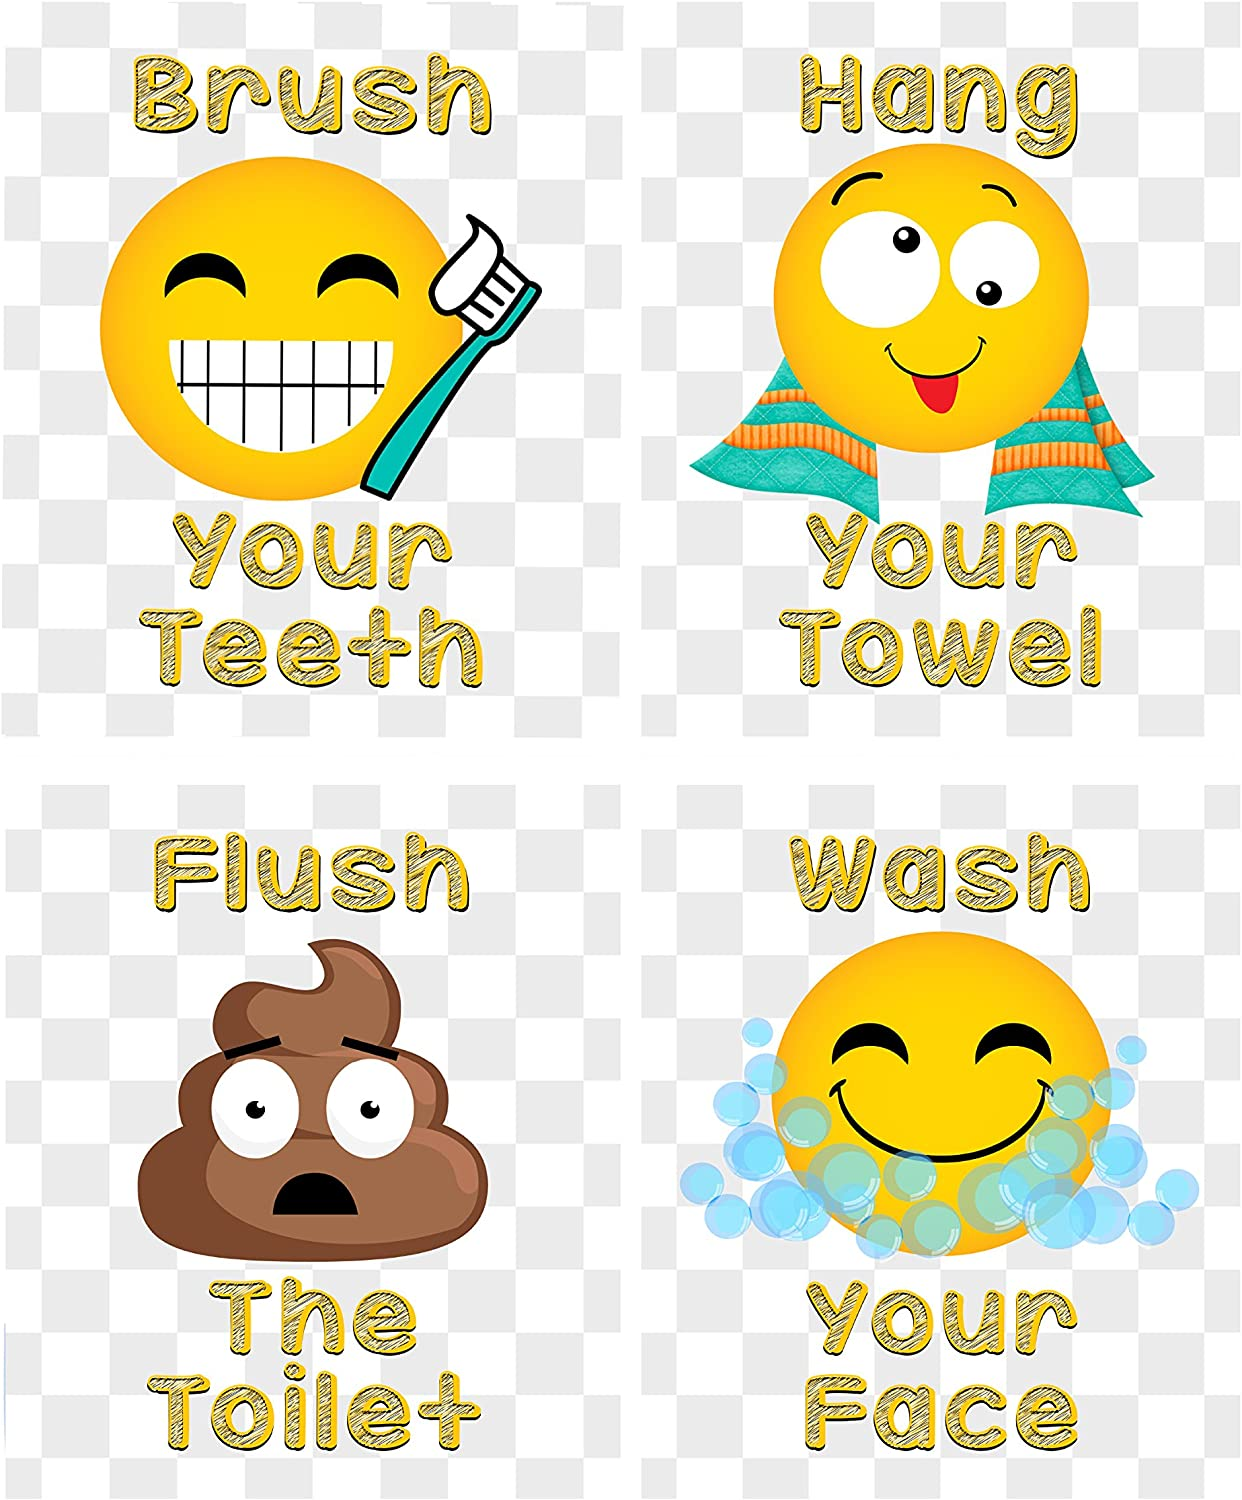 Faces Brush Teeth Hang Towel Wash Hands Bathroom Wall Art Decor (Set of Four) Happy Silly Poop